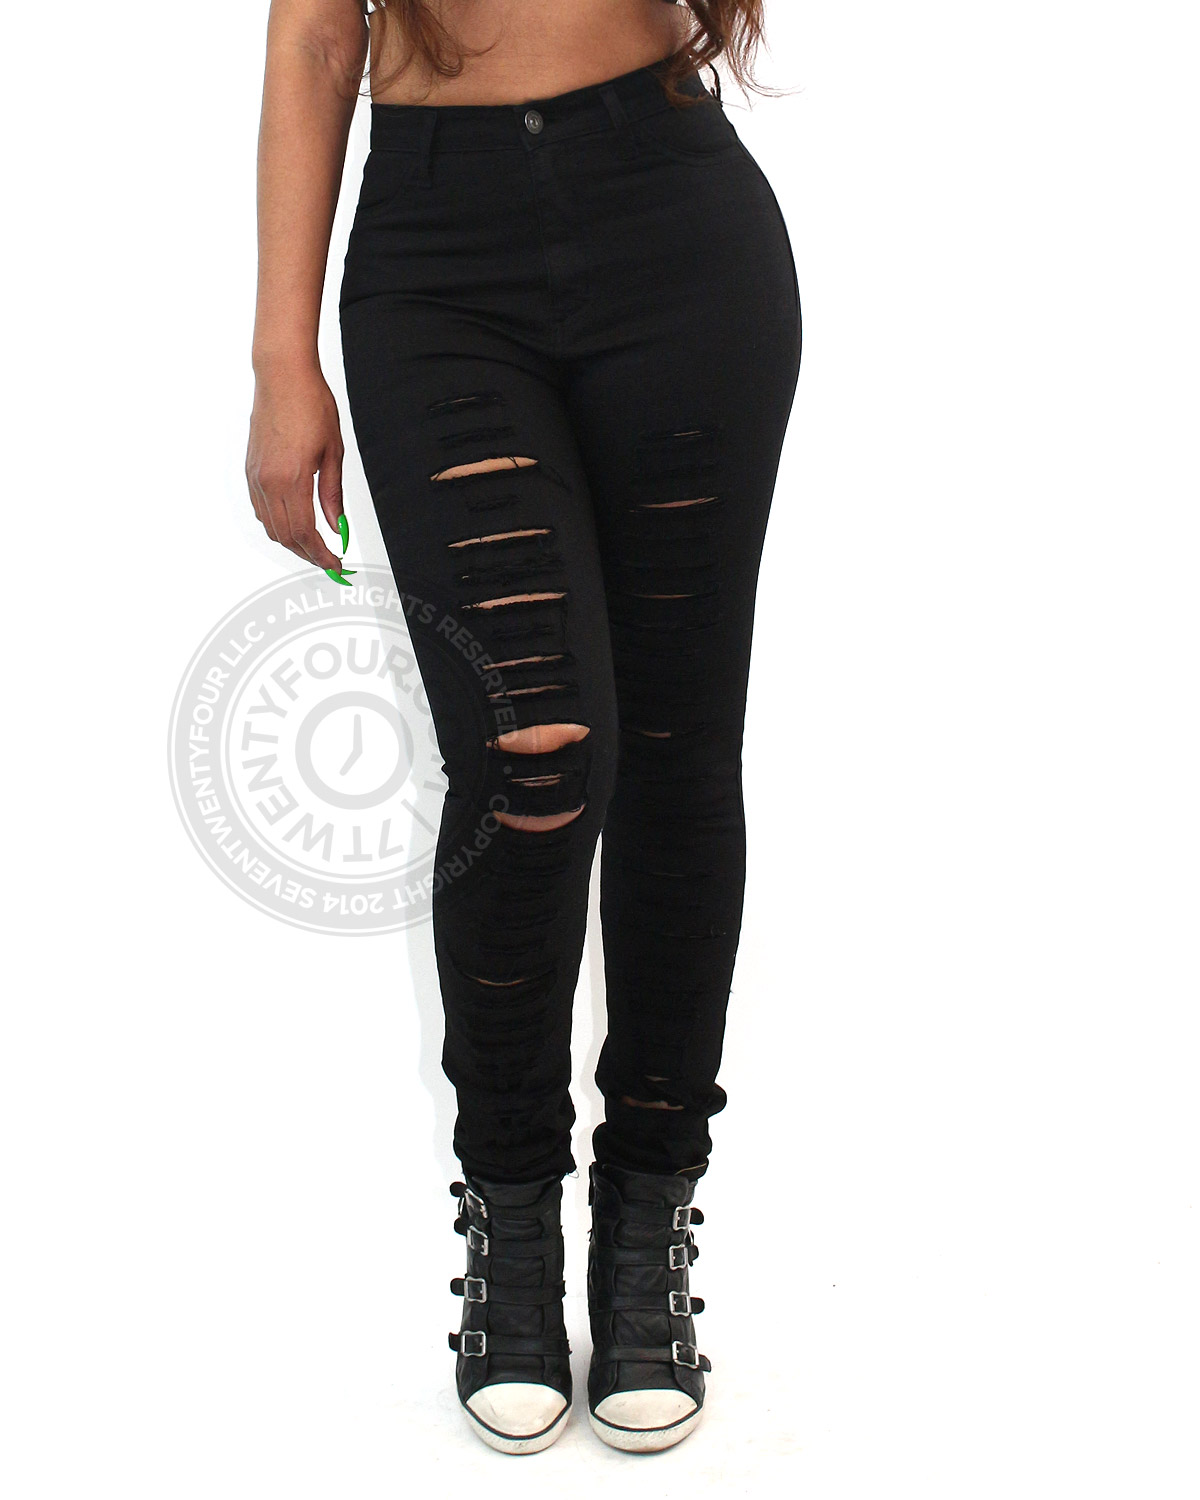 shredded black high waist jeans | edgy clothing | 7twentyfour.com